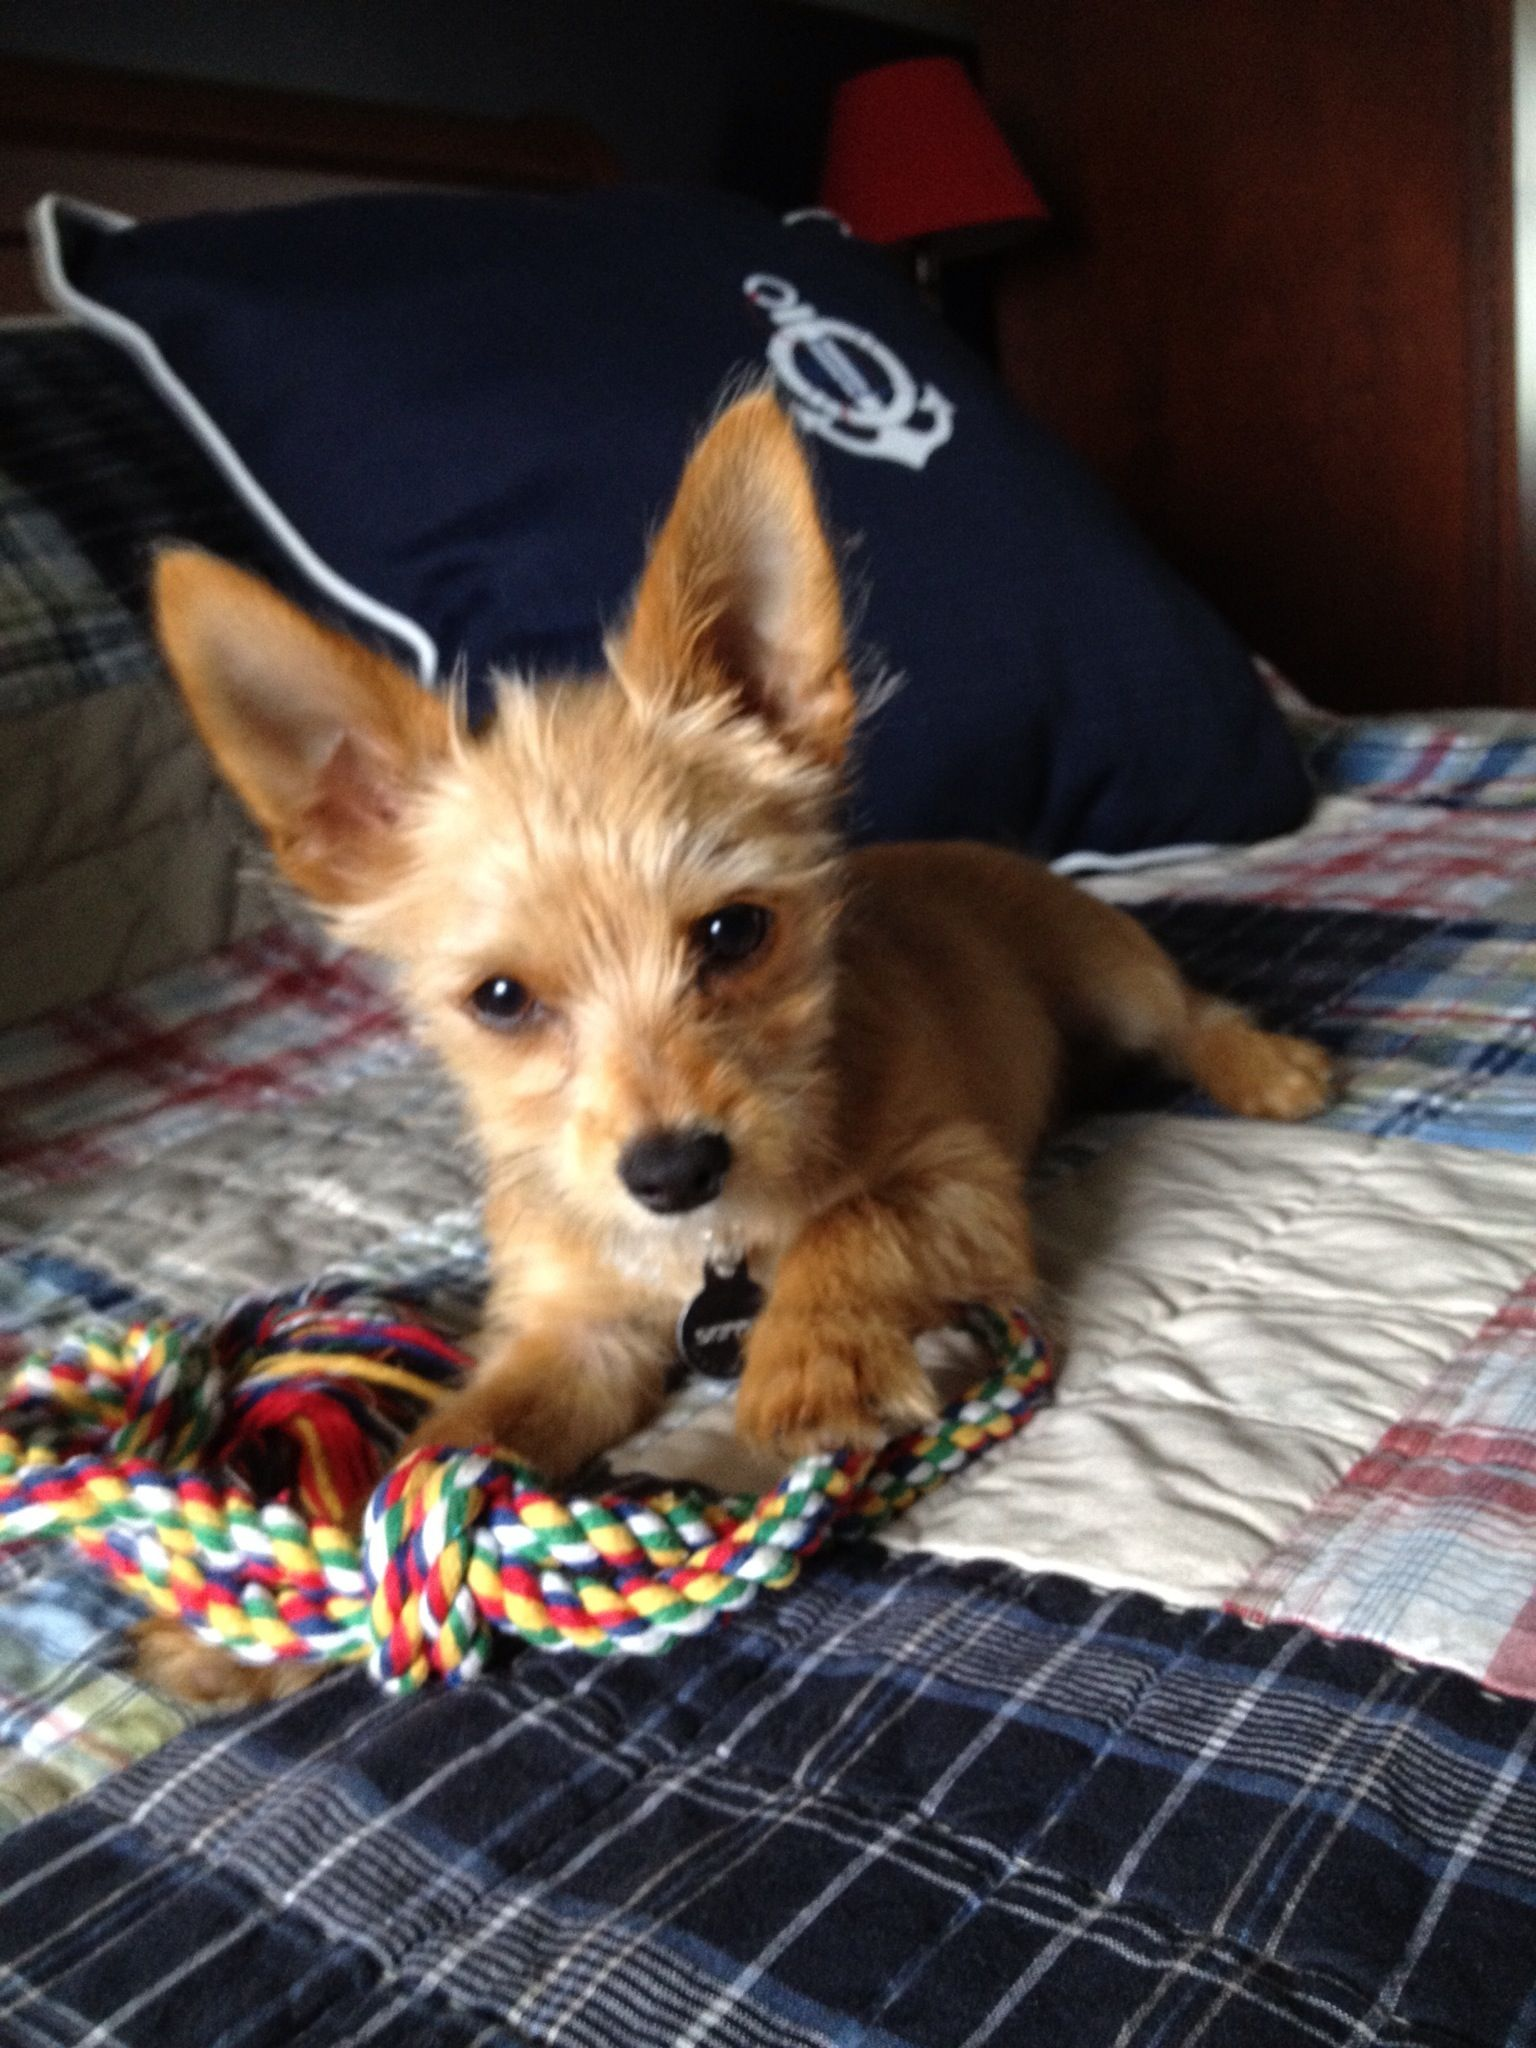 AWWW! This chorkie looks like my dog Pippin as a puppy